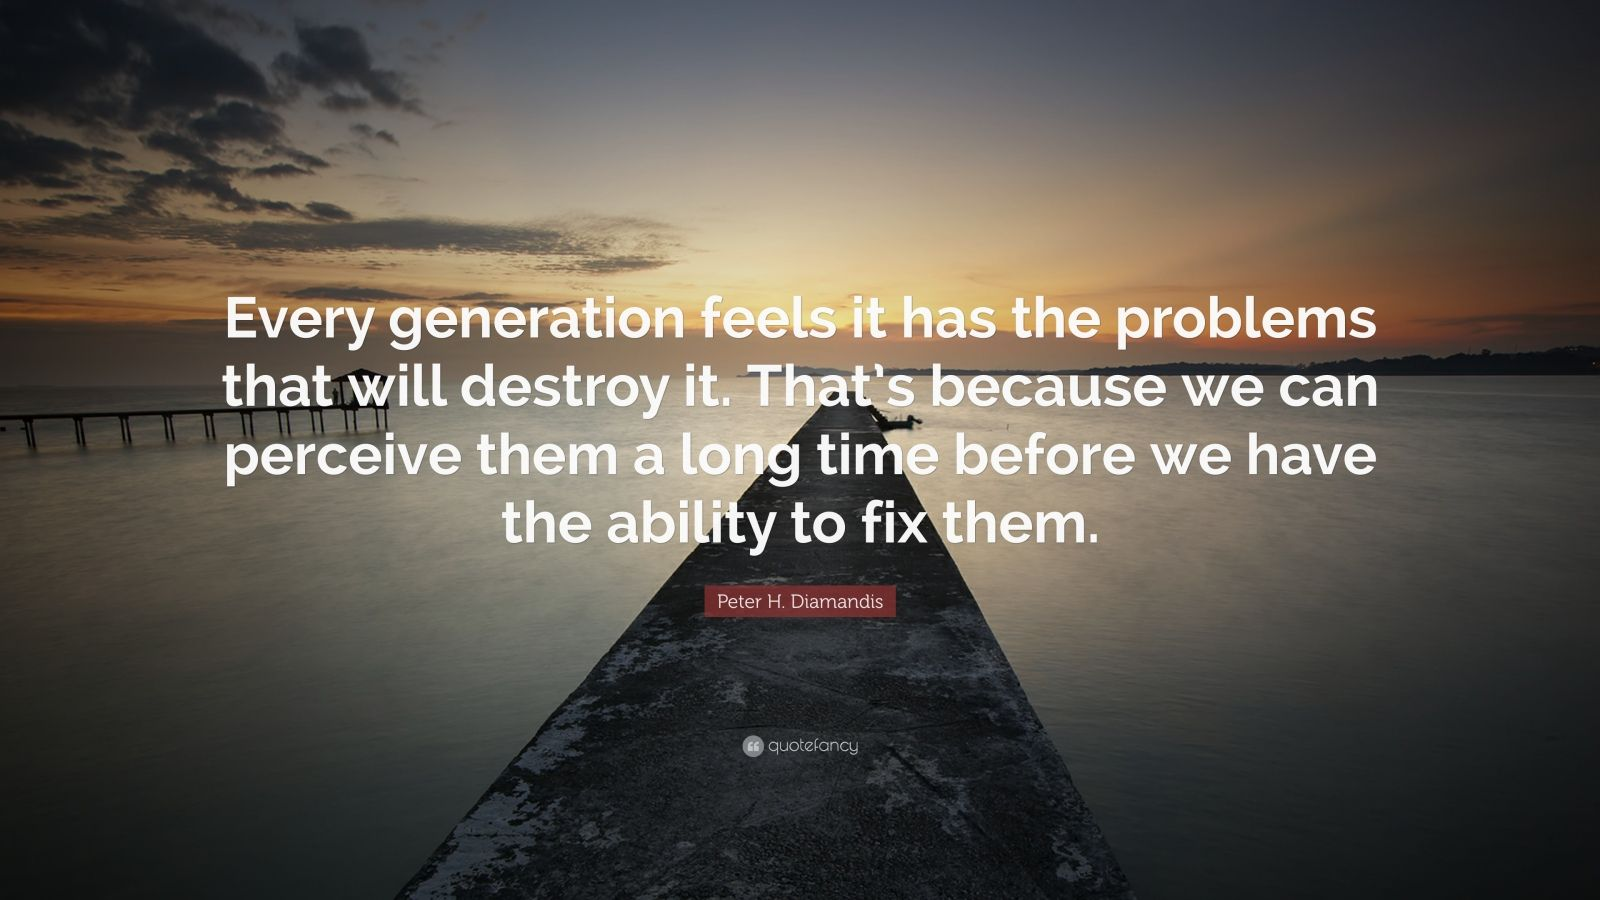 """Peter H. Diamandis Quote: """"Every generation feels it has the problems that will destroy it. That's because we can perceive them a long time before we have the ability to fix them."""""""